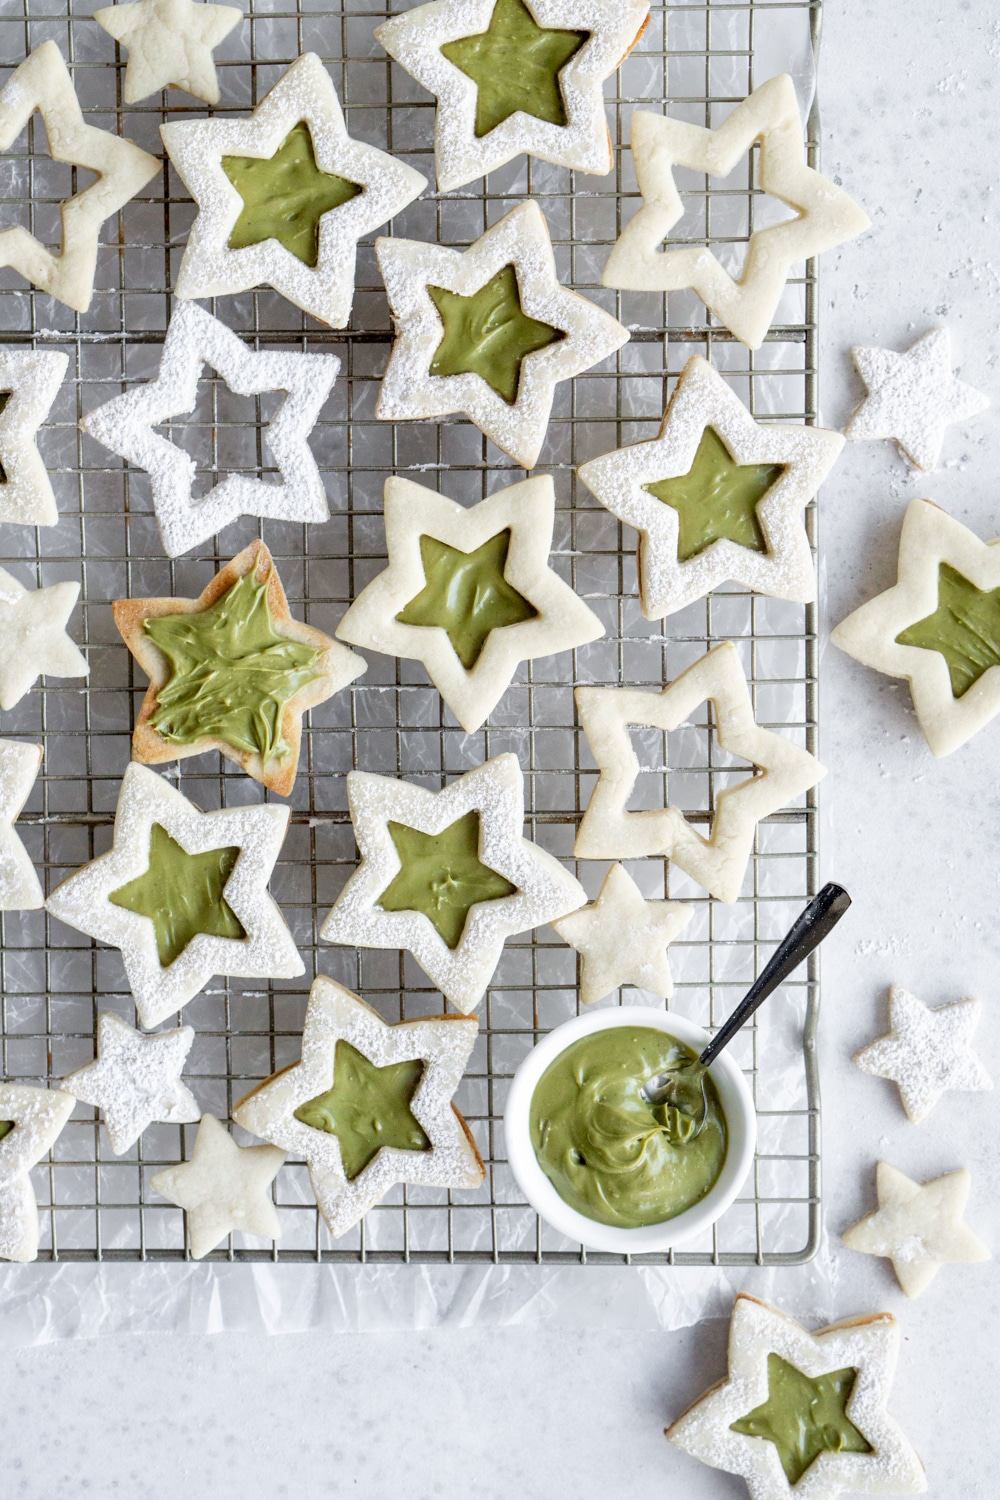 Star cookies on a cooling rack and a bowl of pistachio cream with a spoon